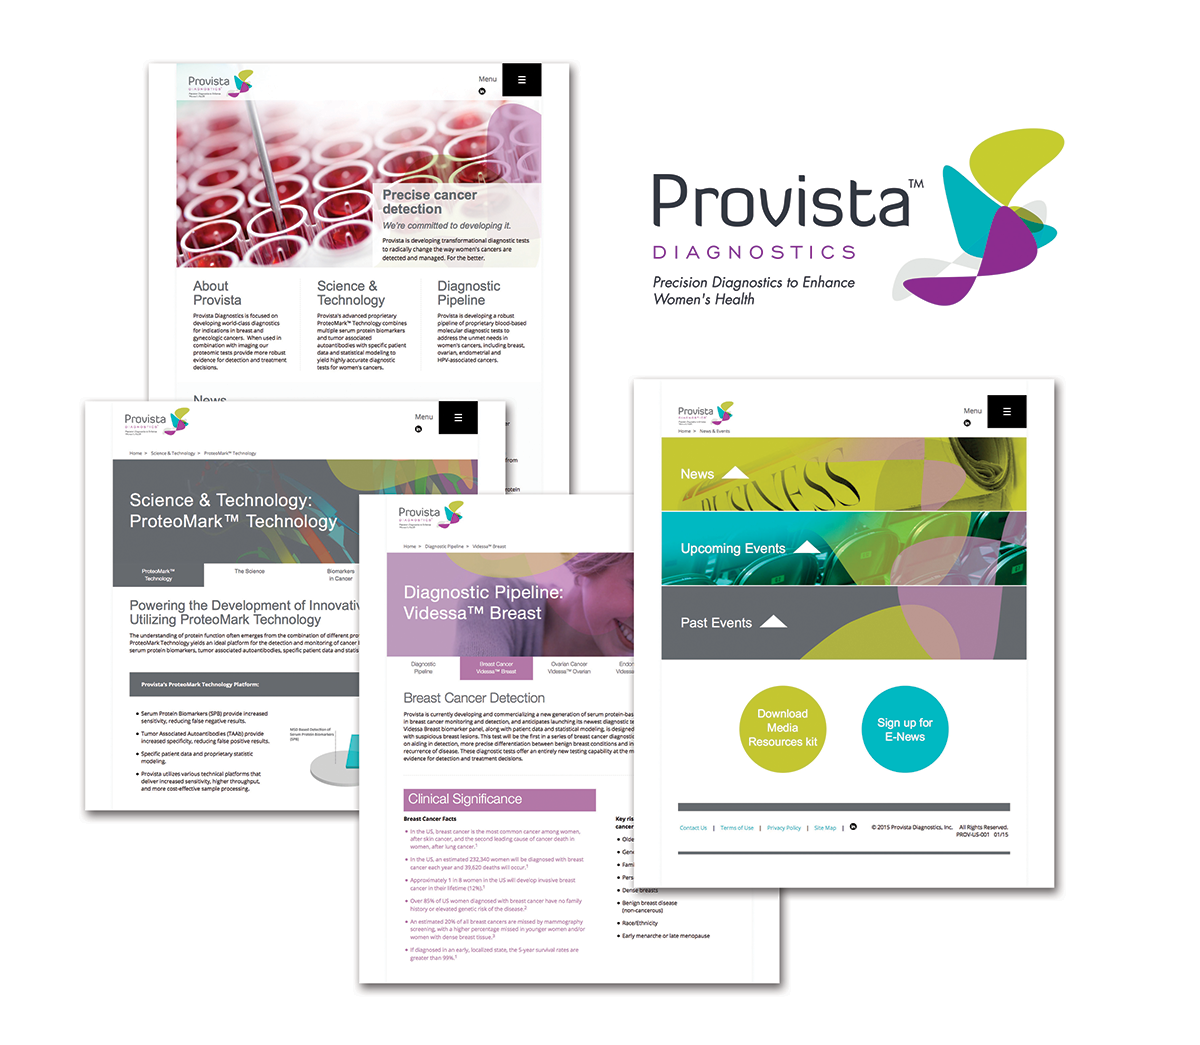 Brandkarma's complete and insightful patient-information packaging for Provista